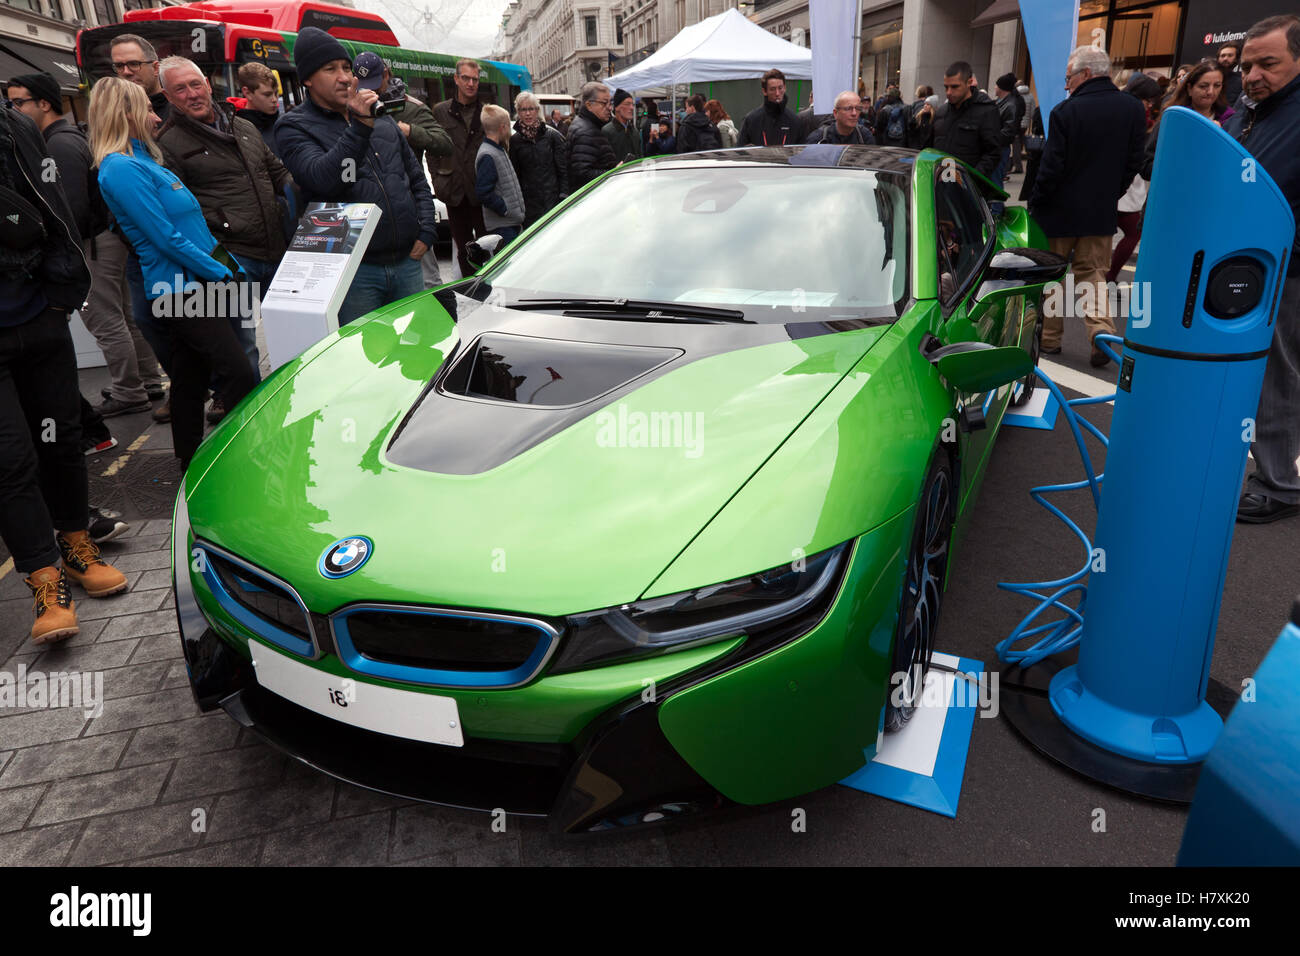 Bmw I8 Plug In Hybrid Sports Car On Display In The Low Emission